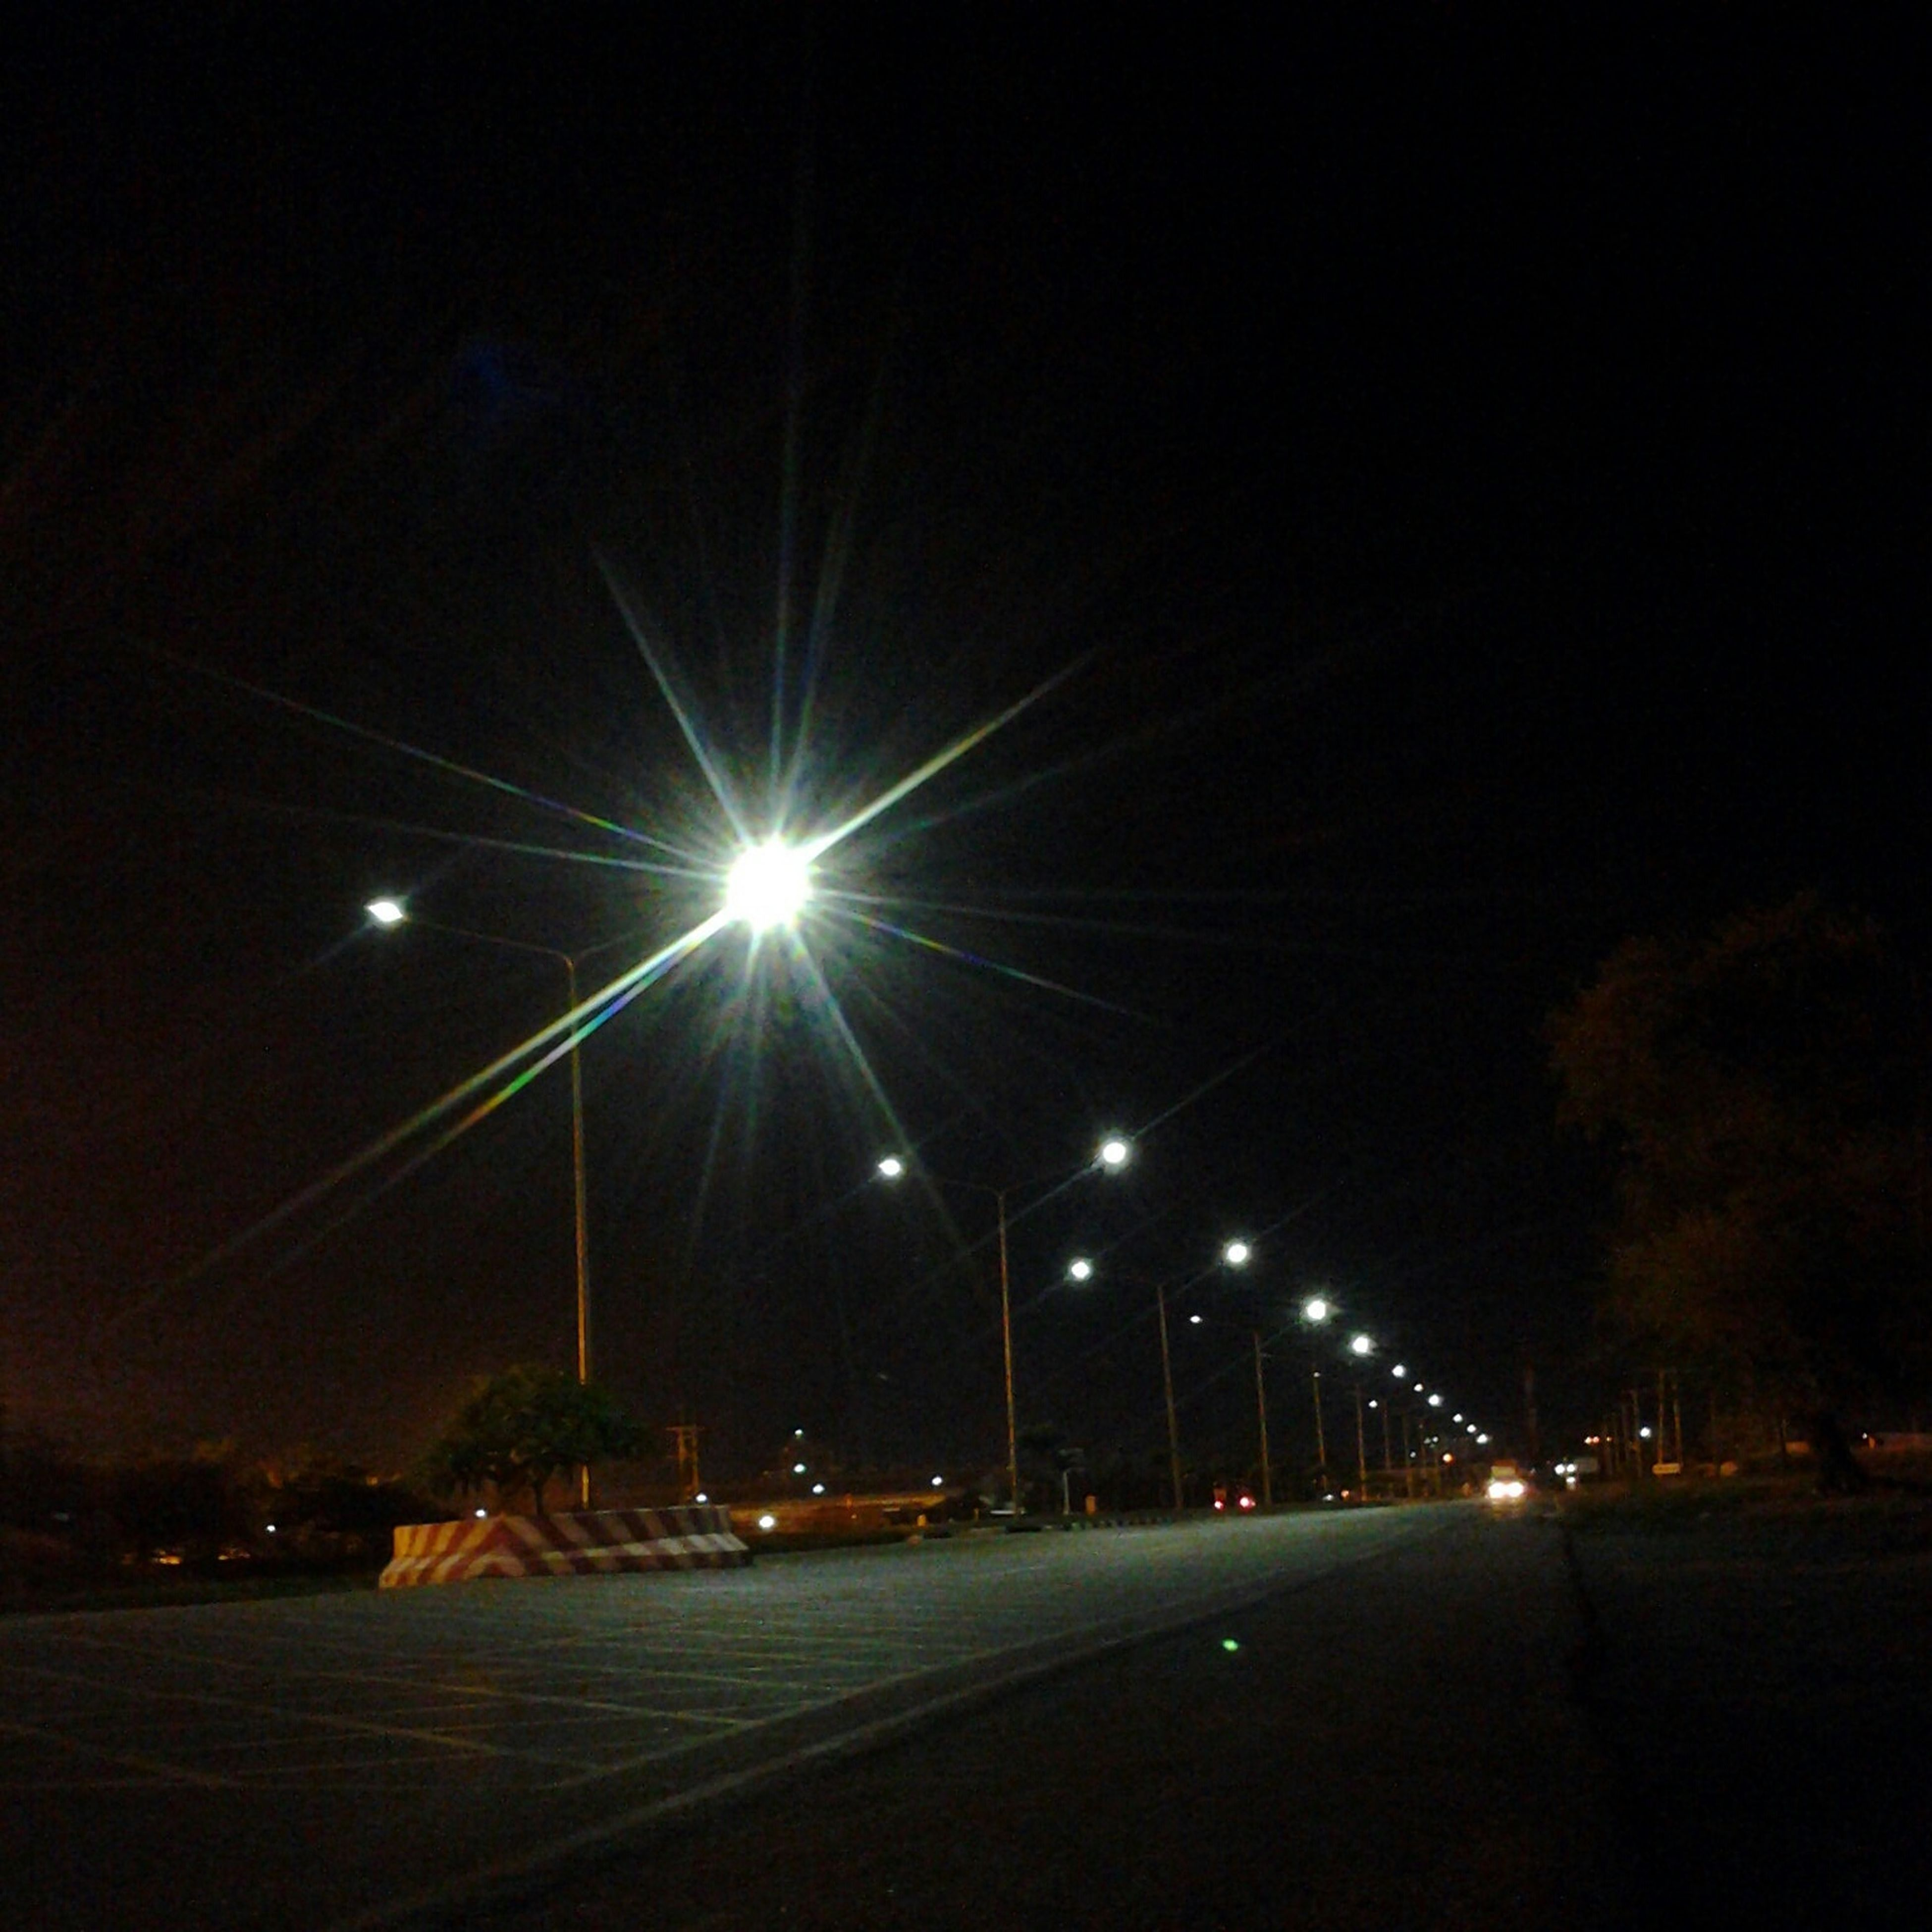 night, illuminated, street light, road, transportation, street, the way forward, lighting equipment, car, sky, road marking, copy space, land vehicle, clear sky, outdoors, light - natural phenomenon, dark, diminishing perspective, mode of transport, no people